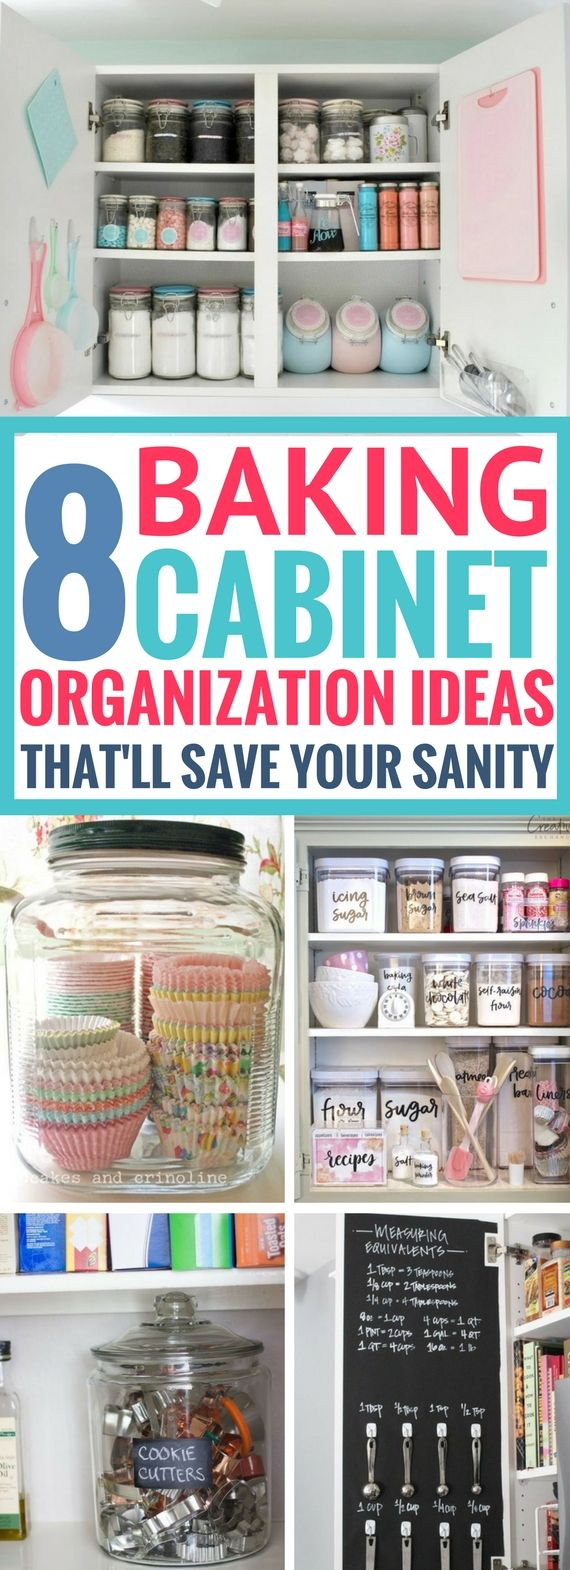 I'm blown away by these AMAZING Baking Cabinet Organization Ideas. Such easy and simple ways to organize a messy baking cabinet once and for all. Definitely going to be rearranging mines really soon.